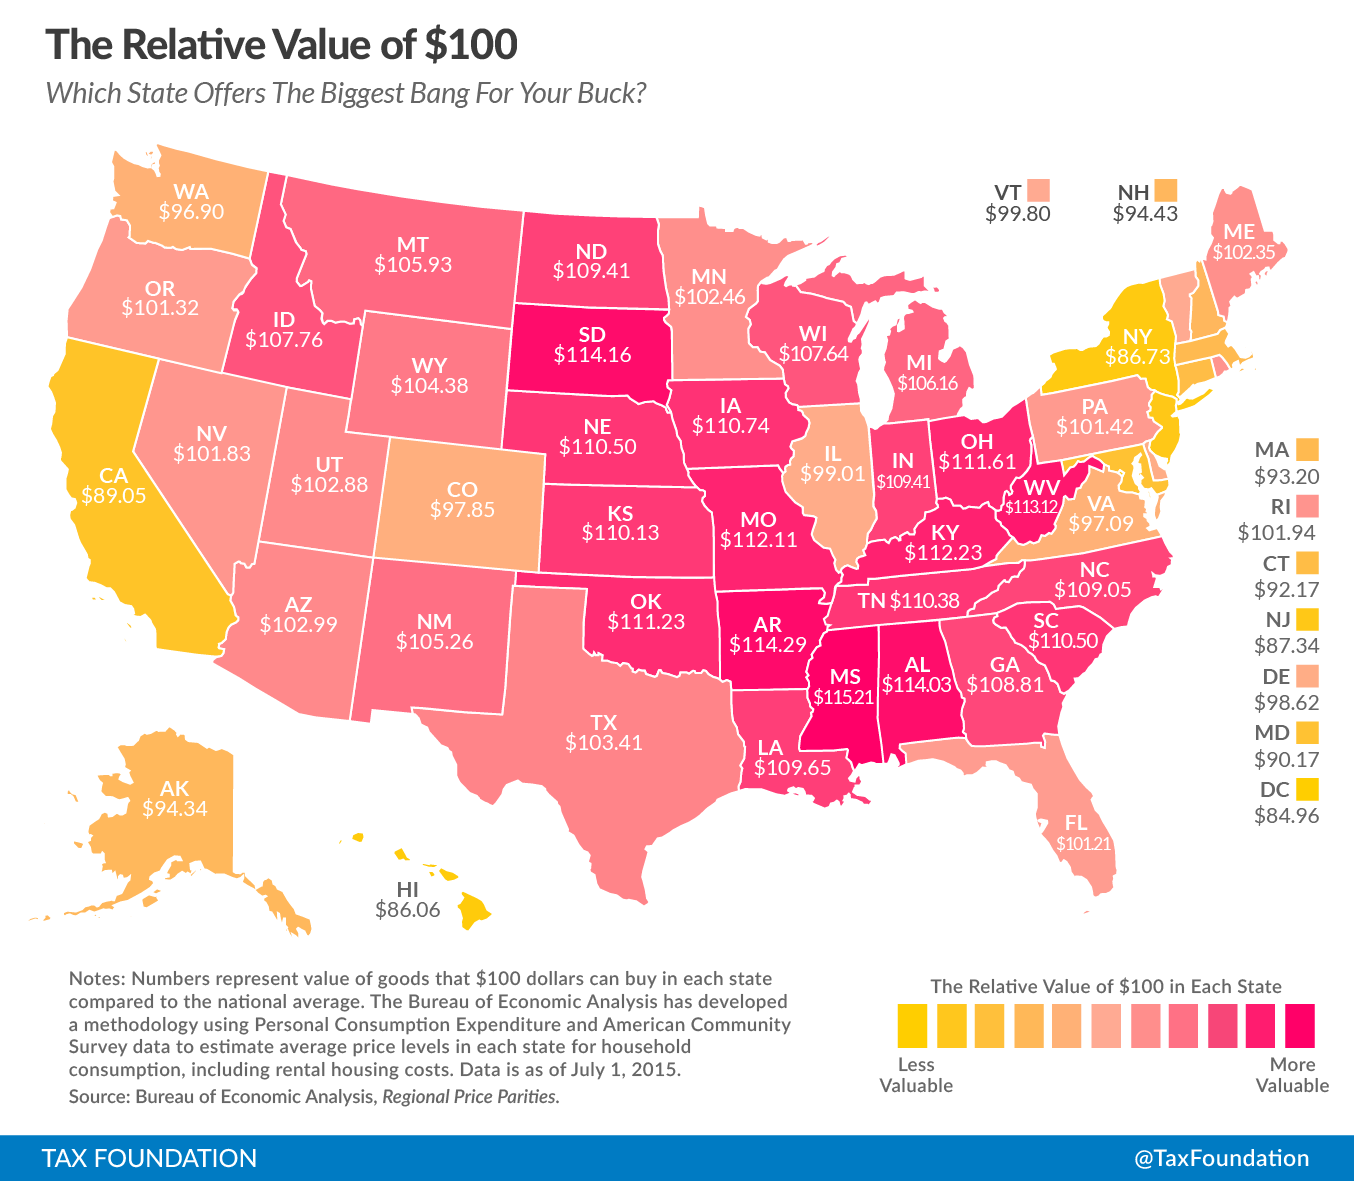 These Are The States Where $100 Goes The Farthest